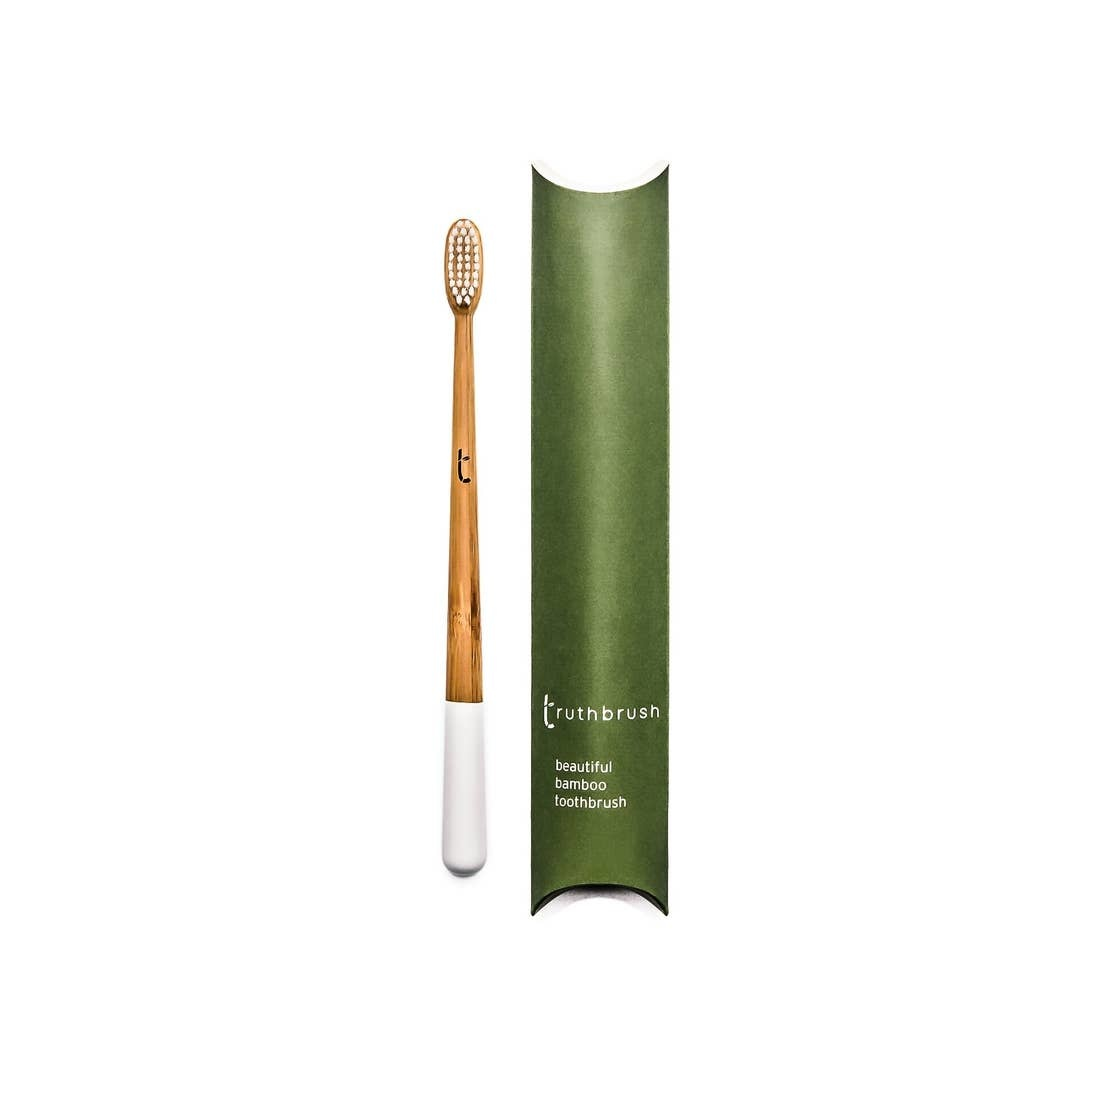 Truthbrush Ltd Bamboo Toothbrush  - Adult Medium Bristle  - White